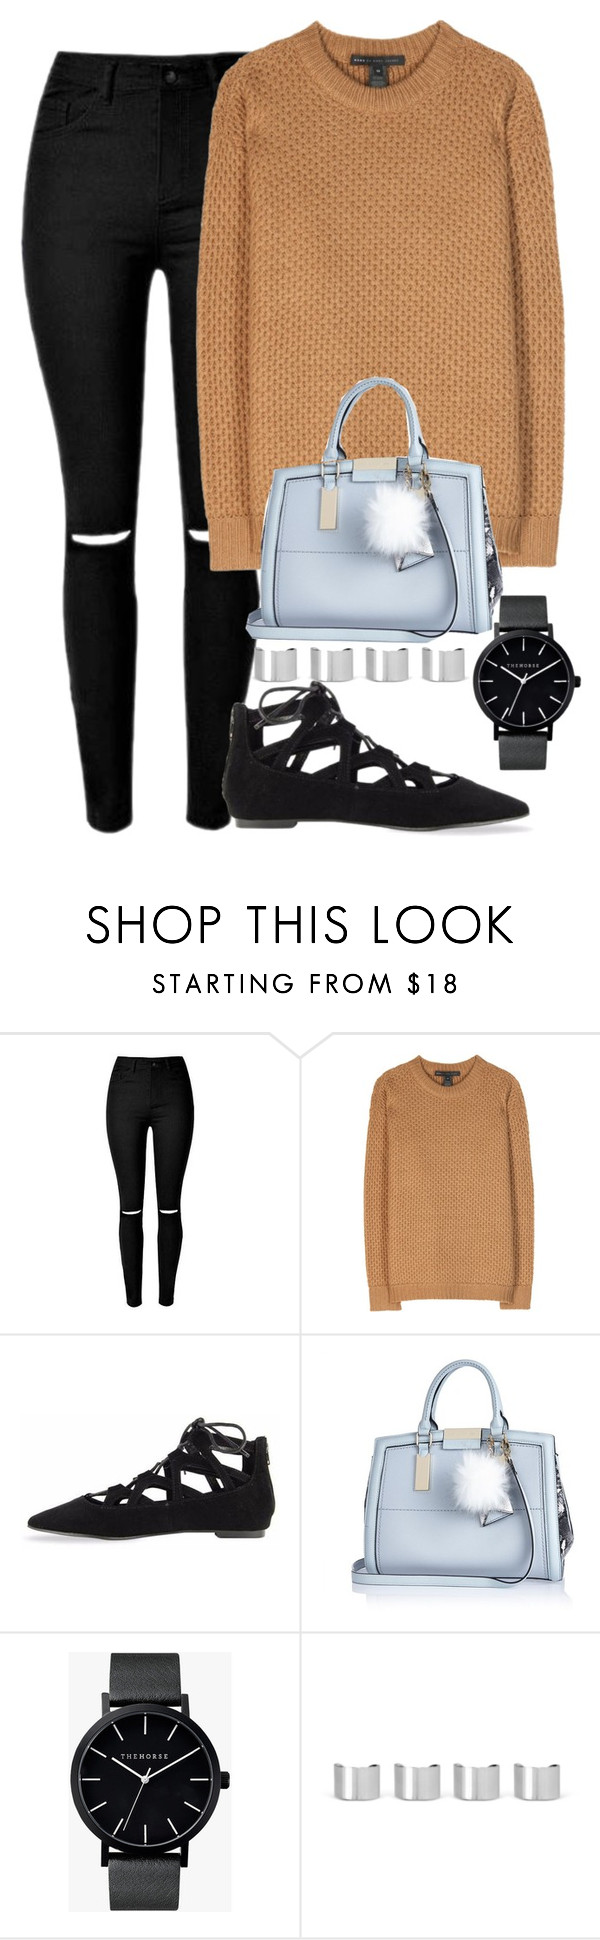 """""""Untitled #407"""" by kaylynewolfenden ❤ liked on Polyvore featuring Marc by Marc Jacobs, River Island, The Horse, Maison Margiela, women's clothing, women, female, woman, misses and juniors"""